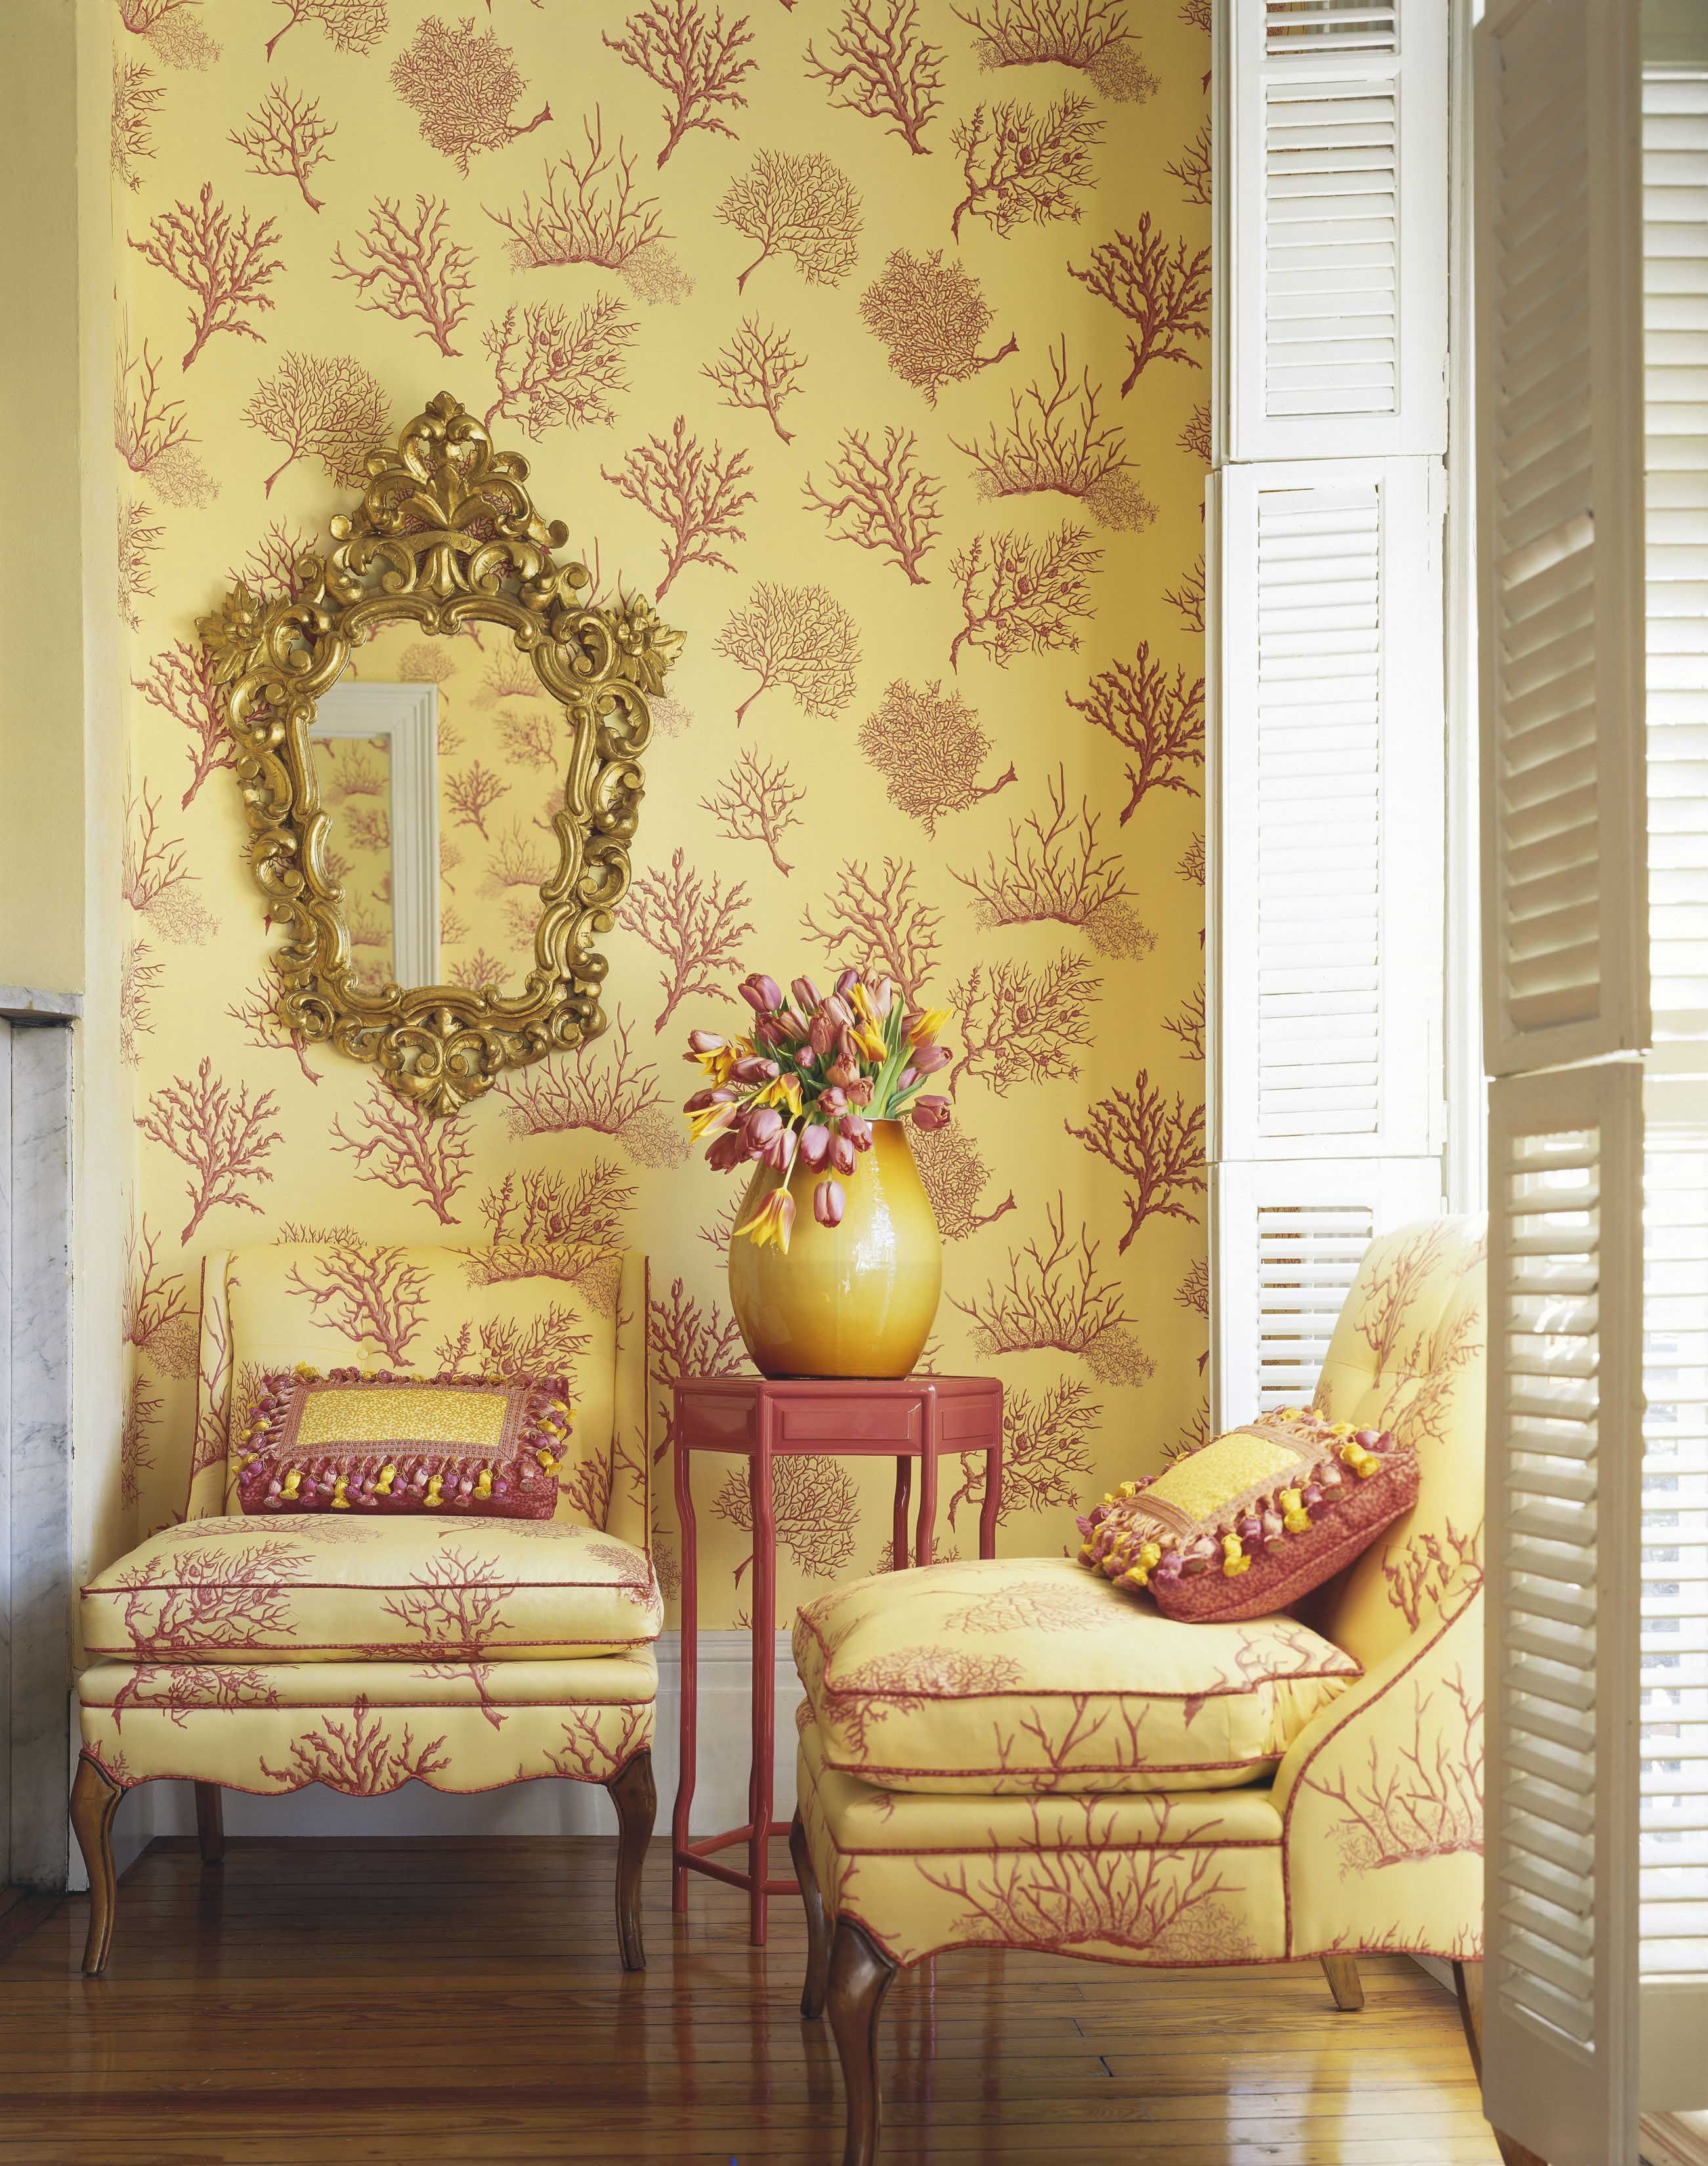 Coral Gables Wallpaper And Fabric From #Laguna #Thibaut